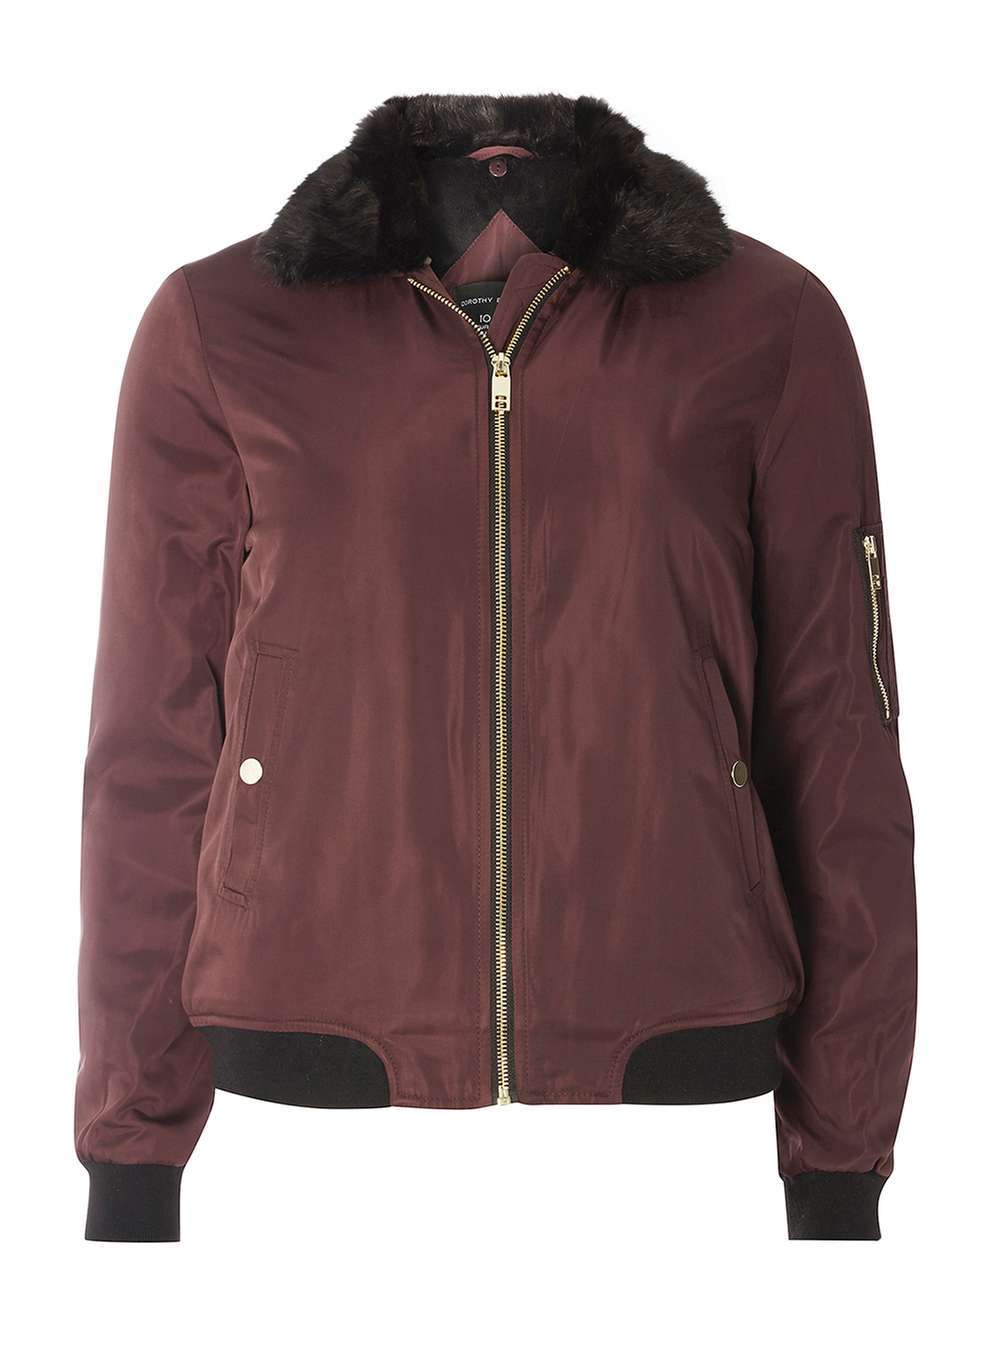 Womens Faux Fur Collar Bomber Red - pattern: plain; fit: loose; style: bomber; predominant colour: burgundy; occasions: casual; length: standard; fibres: polyester/polyamide - 100%; sleeve length: long sleeve; sleeve style: standard; texture group: structured shiny - satin/tafetta/silk etc.; collar: fur; collar break: high; pattern type: fabric; season: a/w 2016; wardrobe: highlight